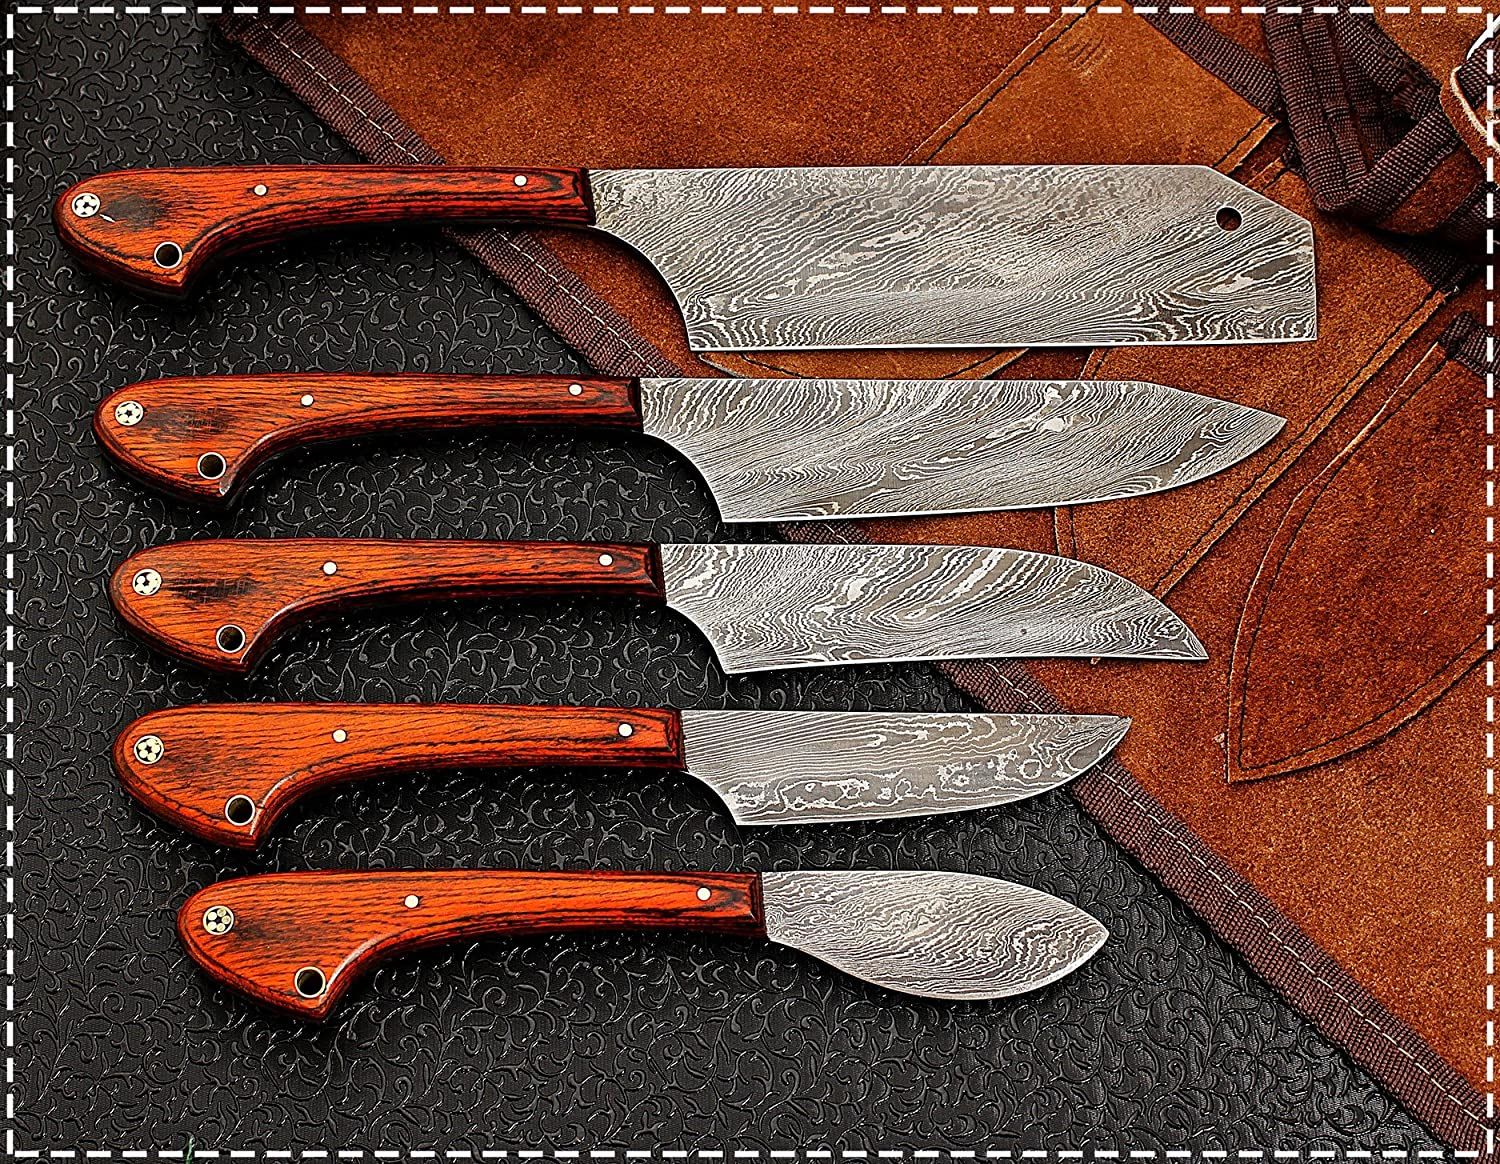 1033 Custom Made Damascus Steel 5 pcs Professional Kitchen Chef Knife Set with 5 Pocket Case Chef Knife Roll Bag by GladiatorsGuild (Red) Red